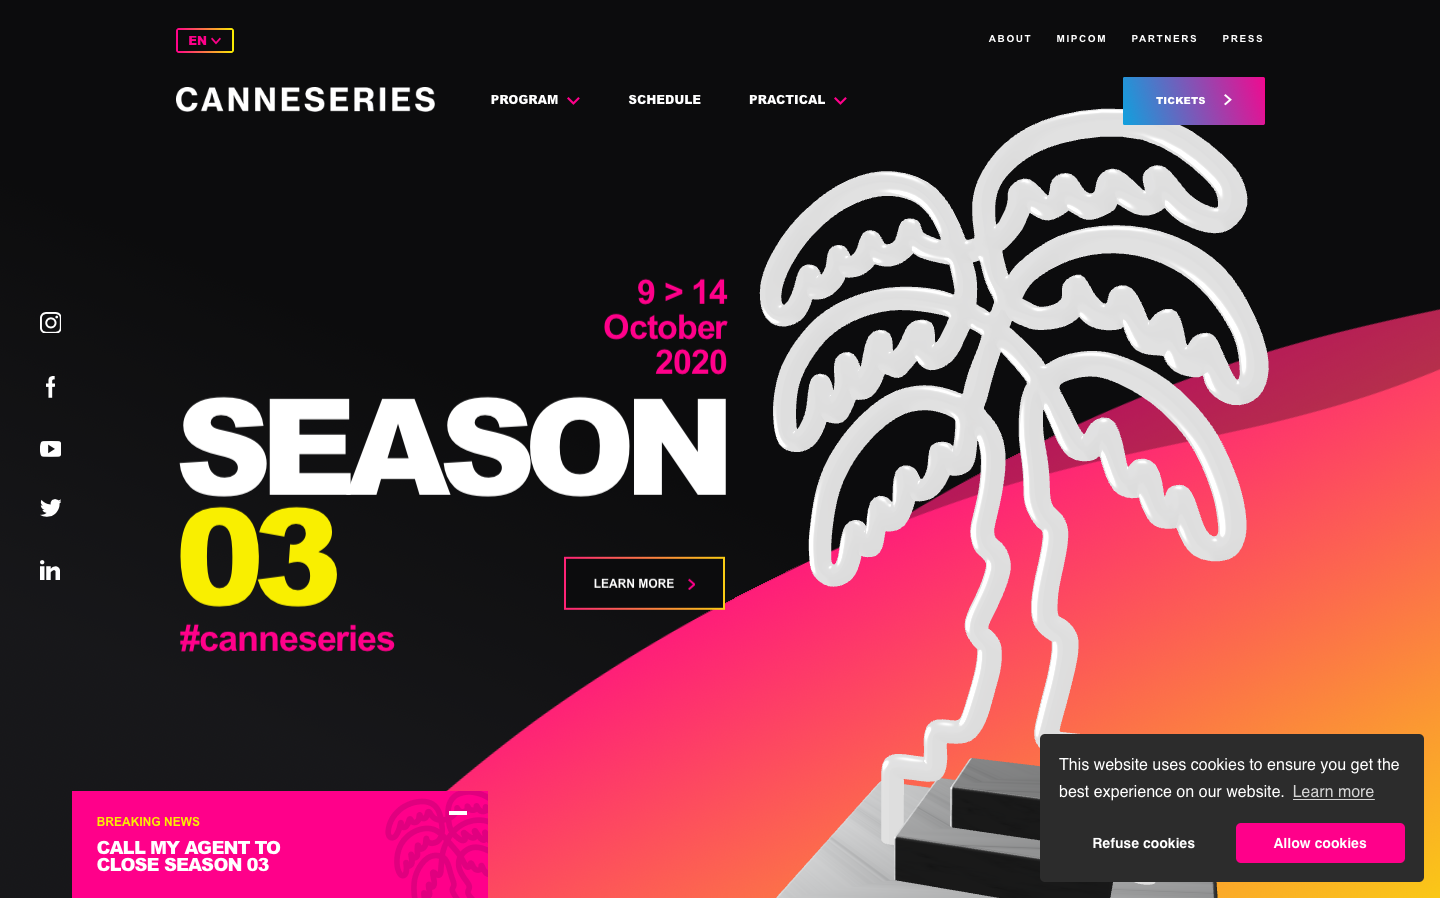 Content Marketing - how the Canne Series' website uses typography and visuals